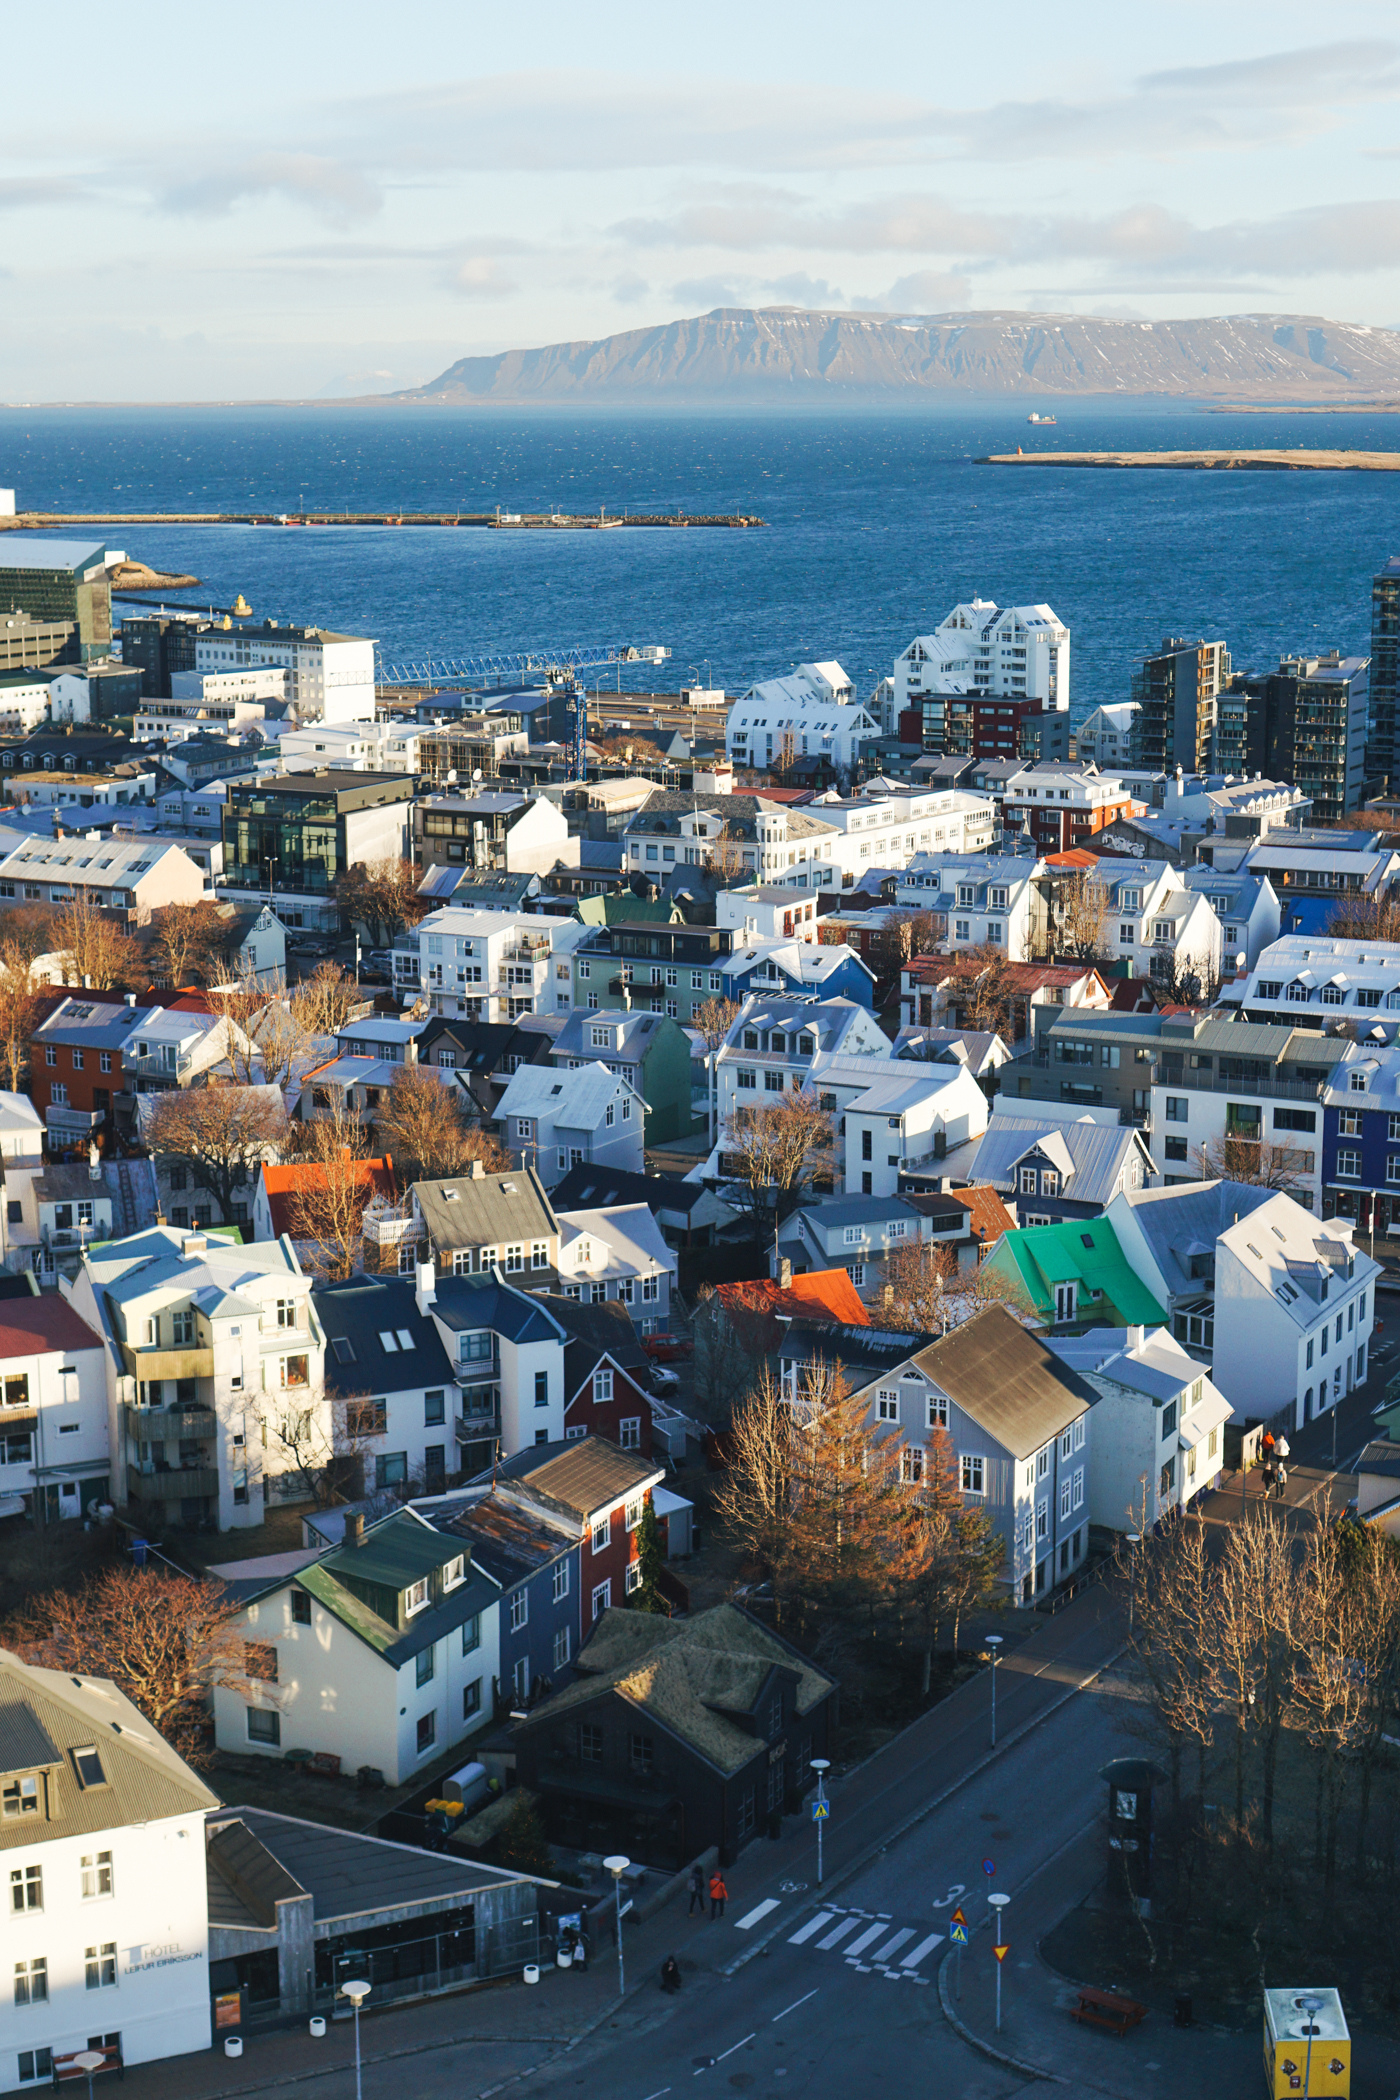 View of Reykjavik from the top of Hallgrímskirkja church.